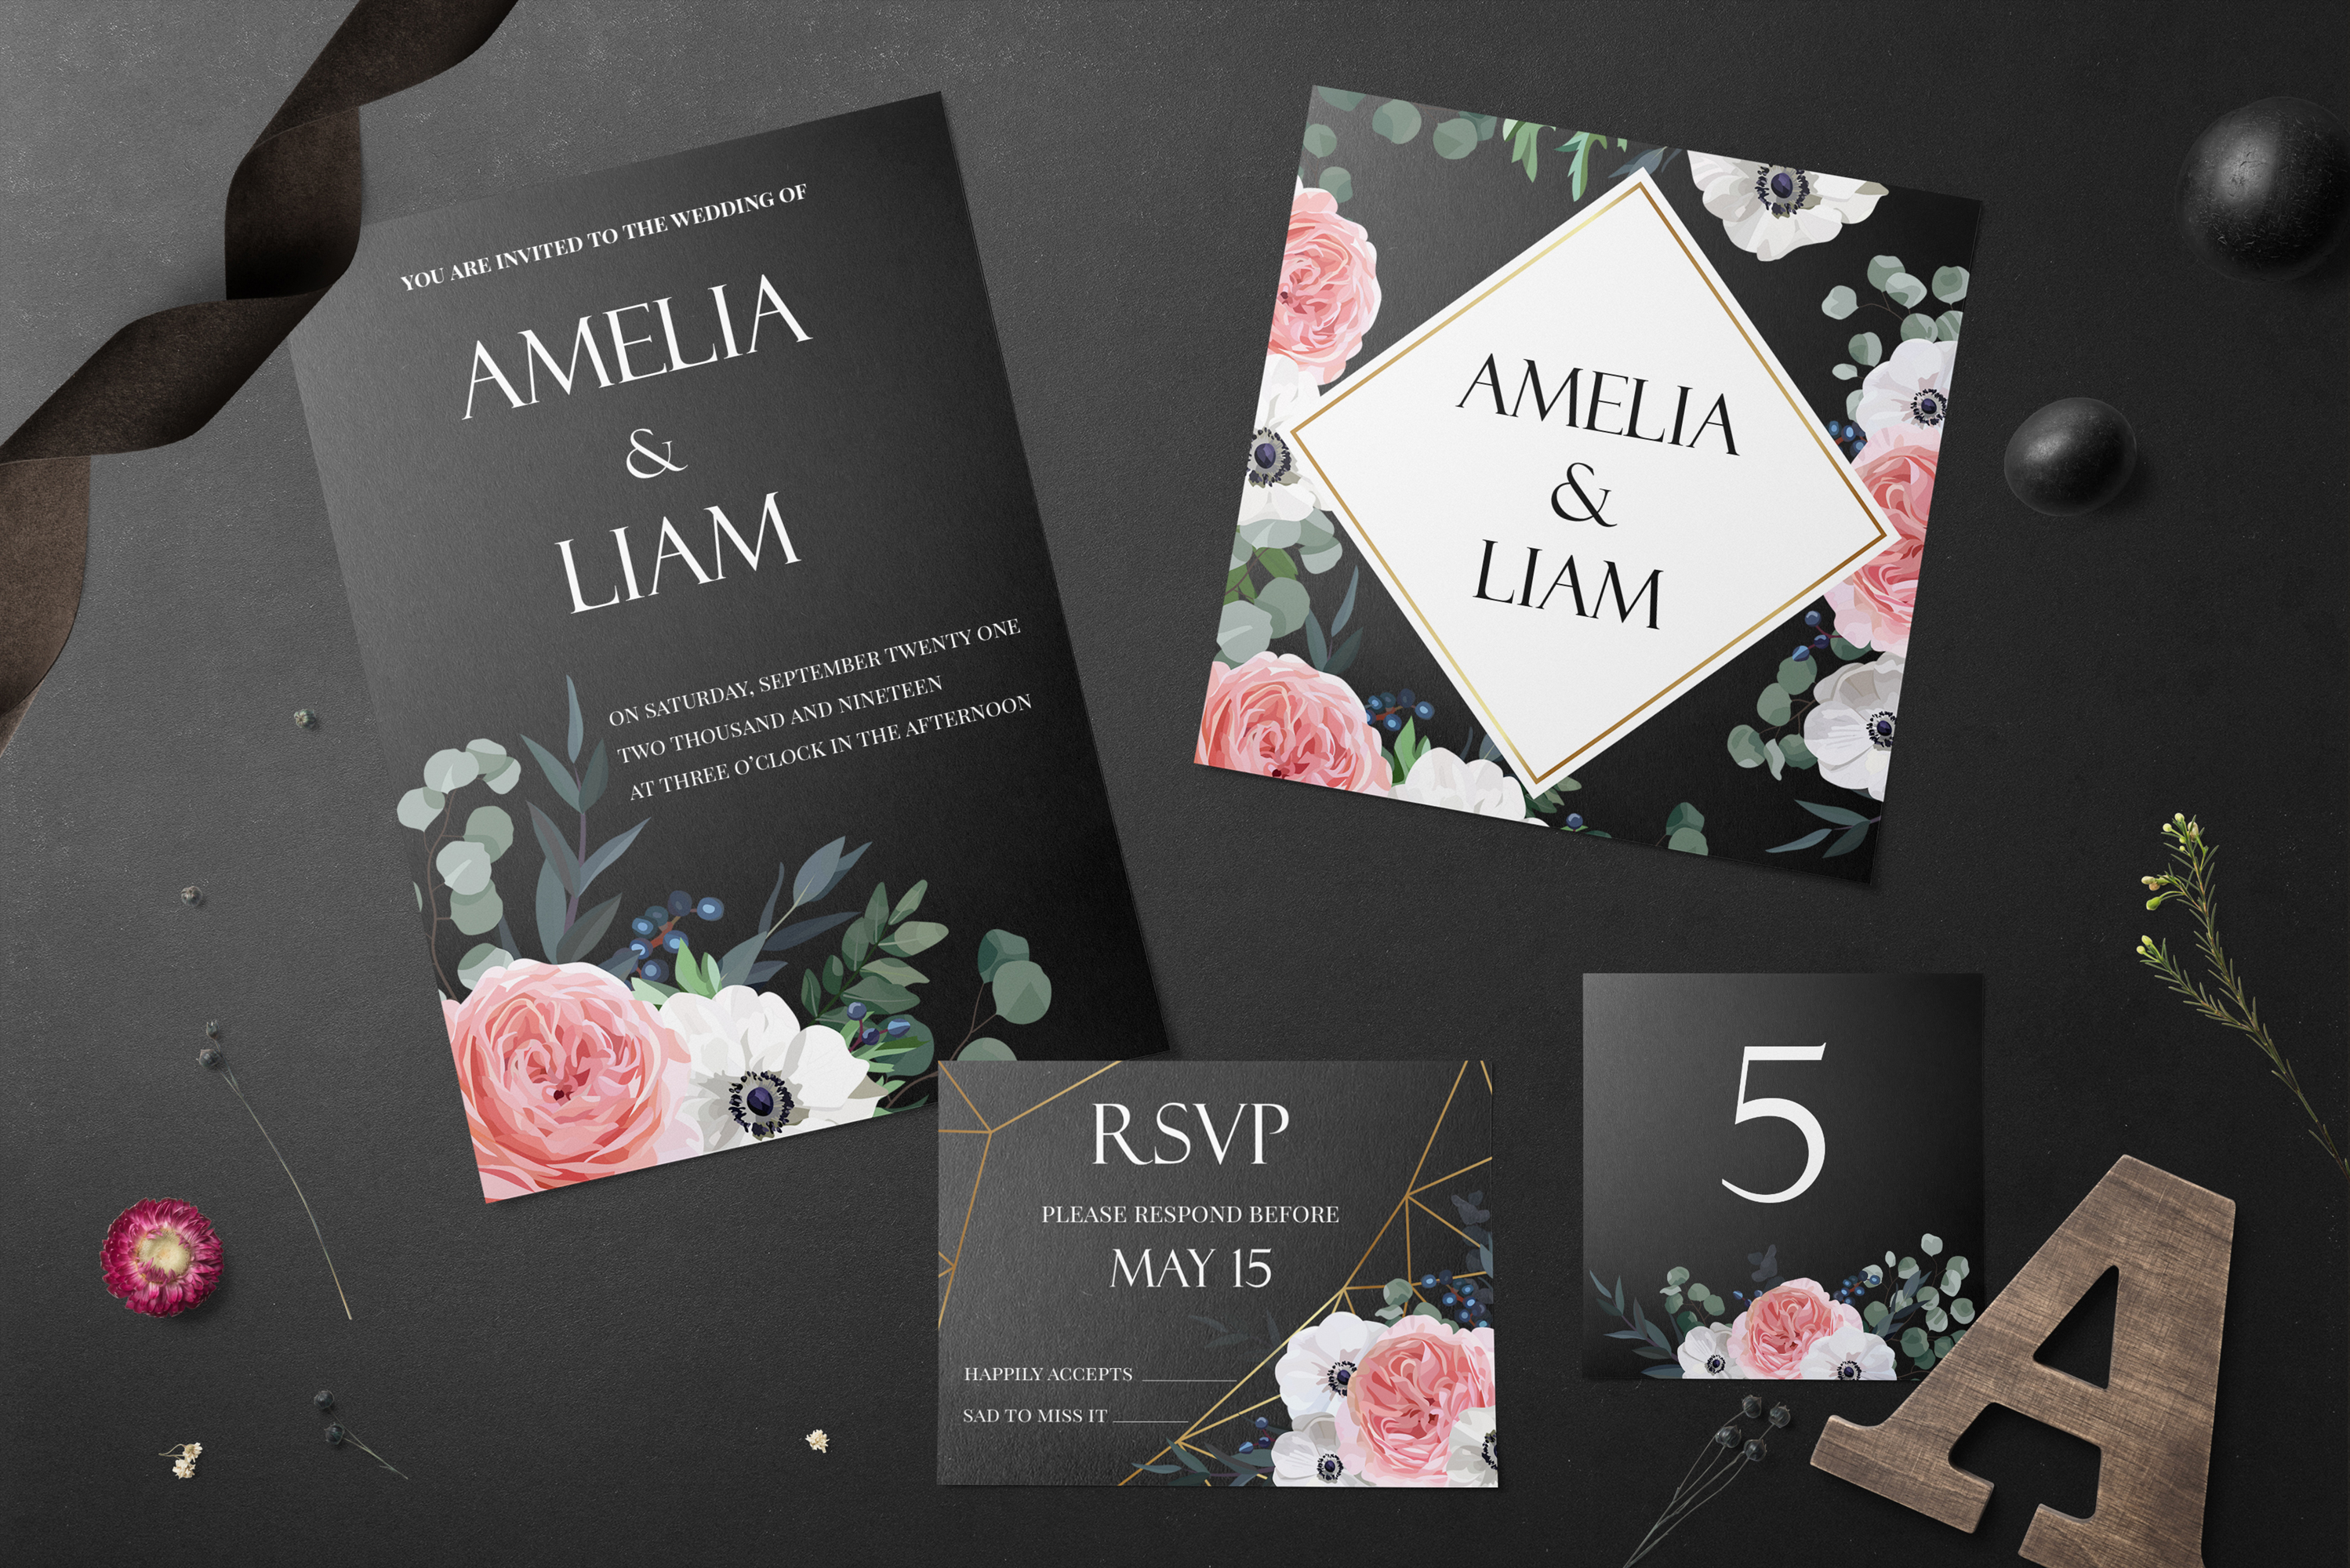 Garden Rose and Anemone - floral vector set example image 2